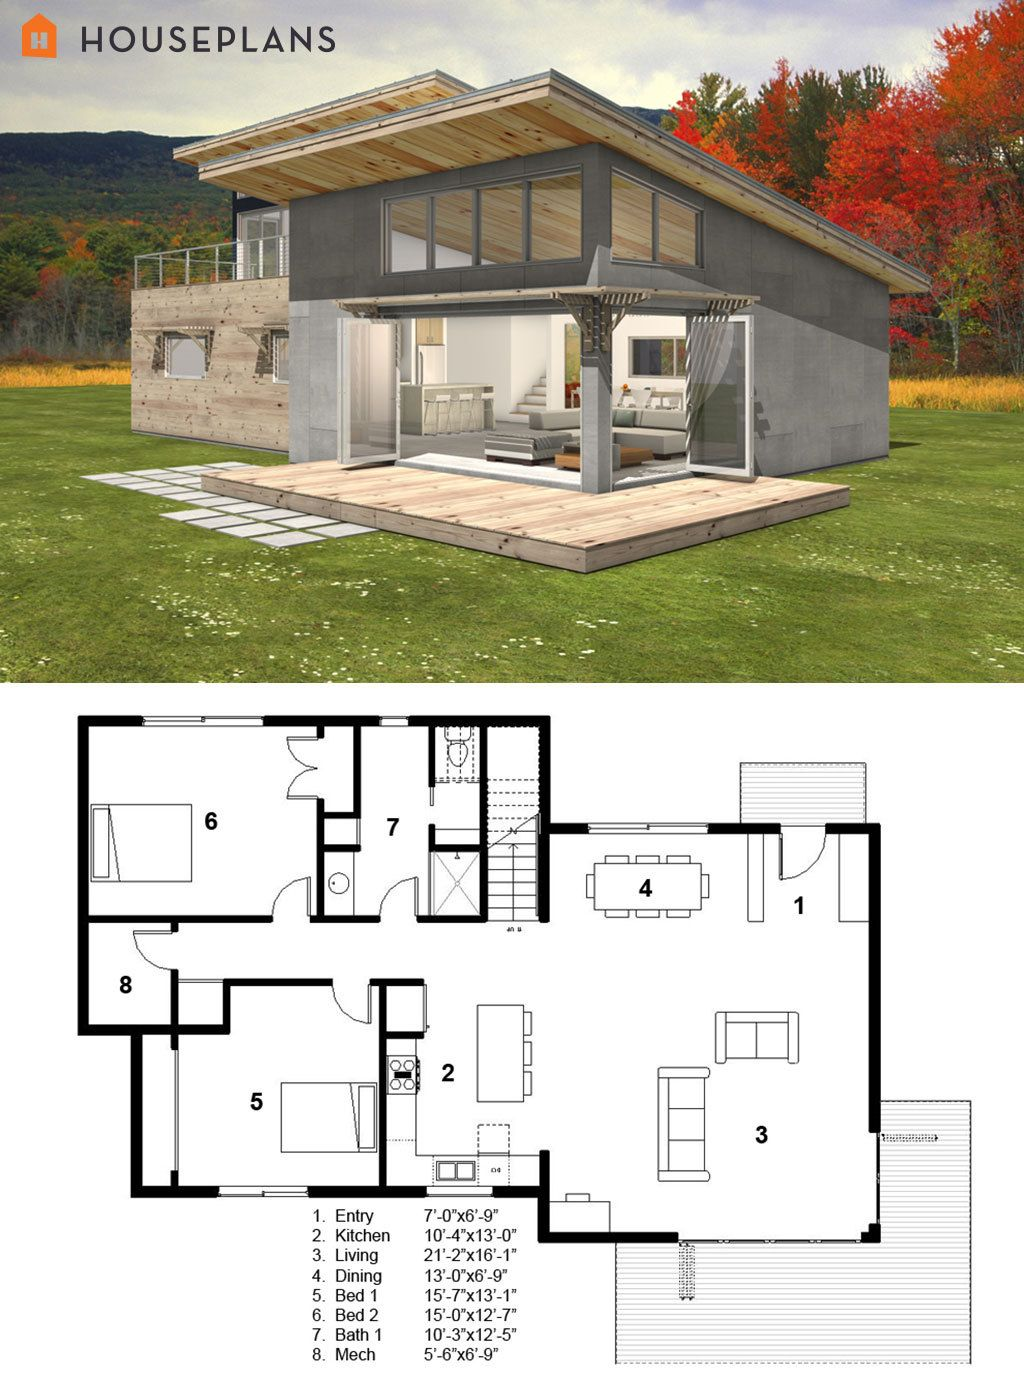 Small modern cabin house plan by freegreen energy for Small modern house plans with loft